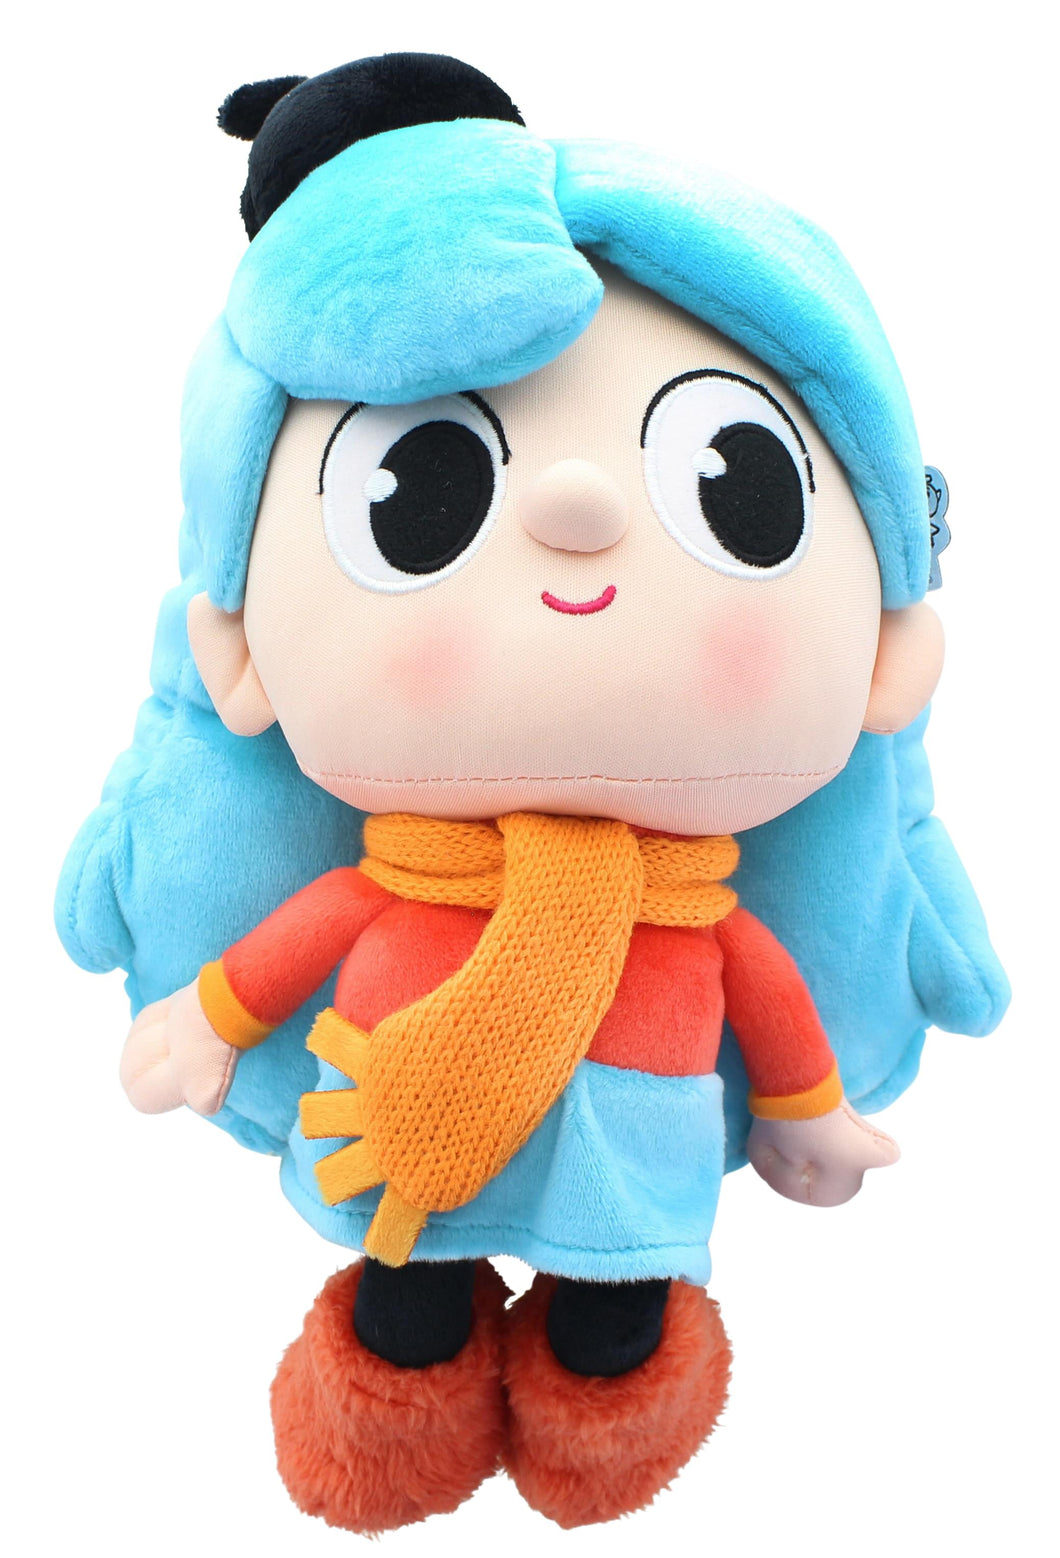 Hilda 12 Inch Collectible Plush